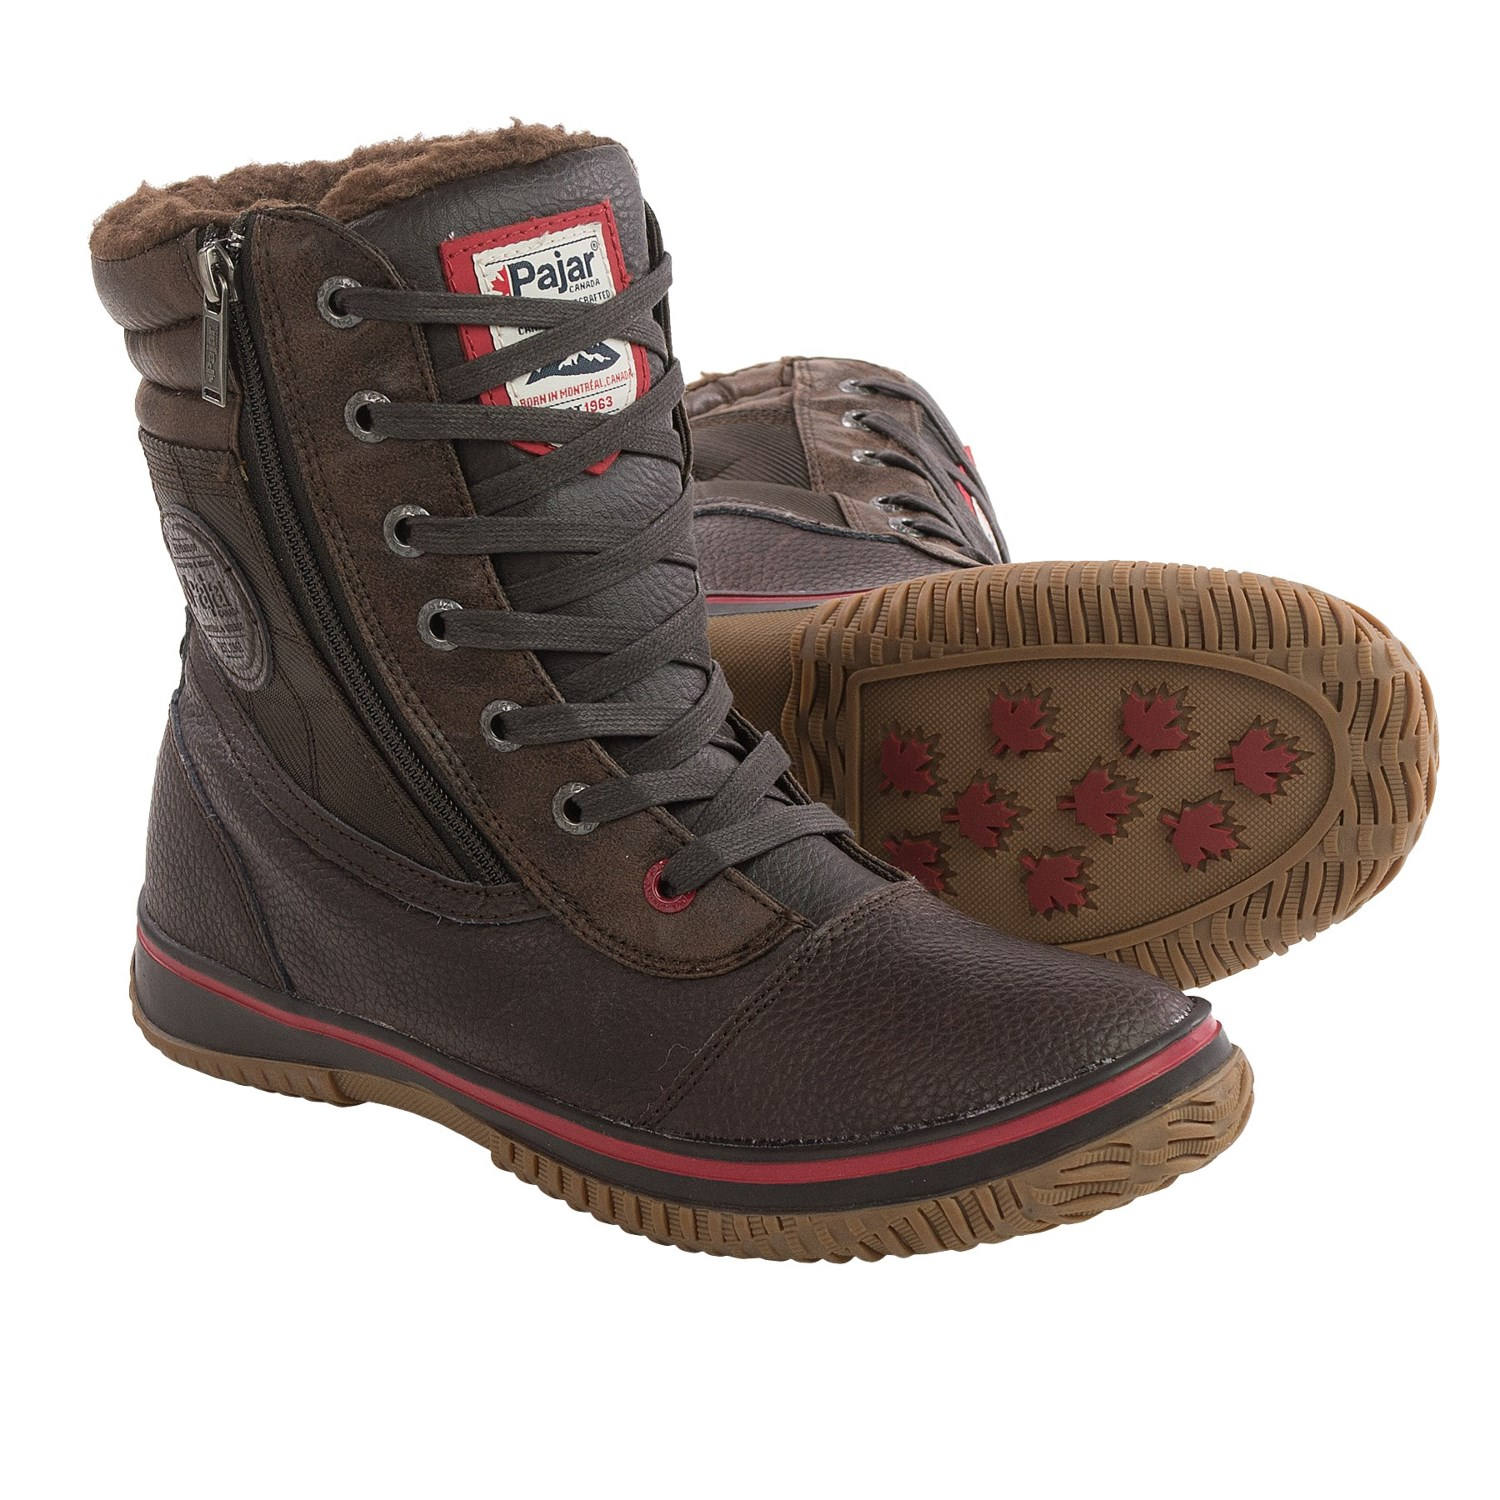 Customer Reviews of Pajar Tour Leather Snow Boots - Waterproof ...